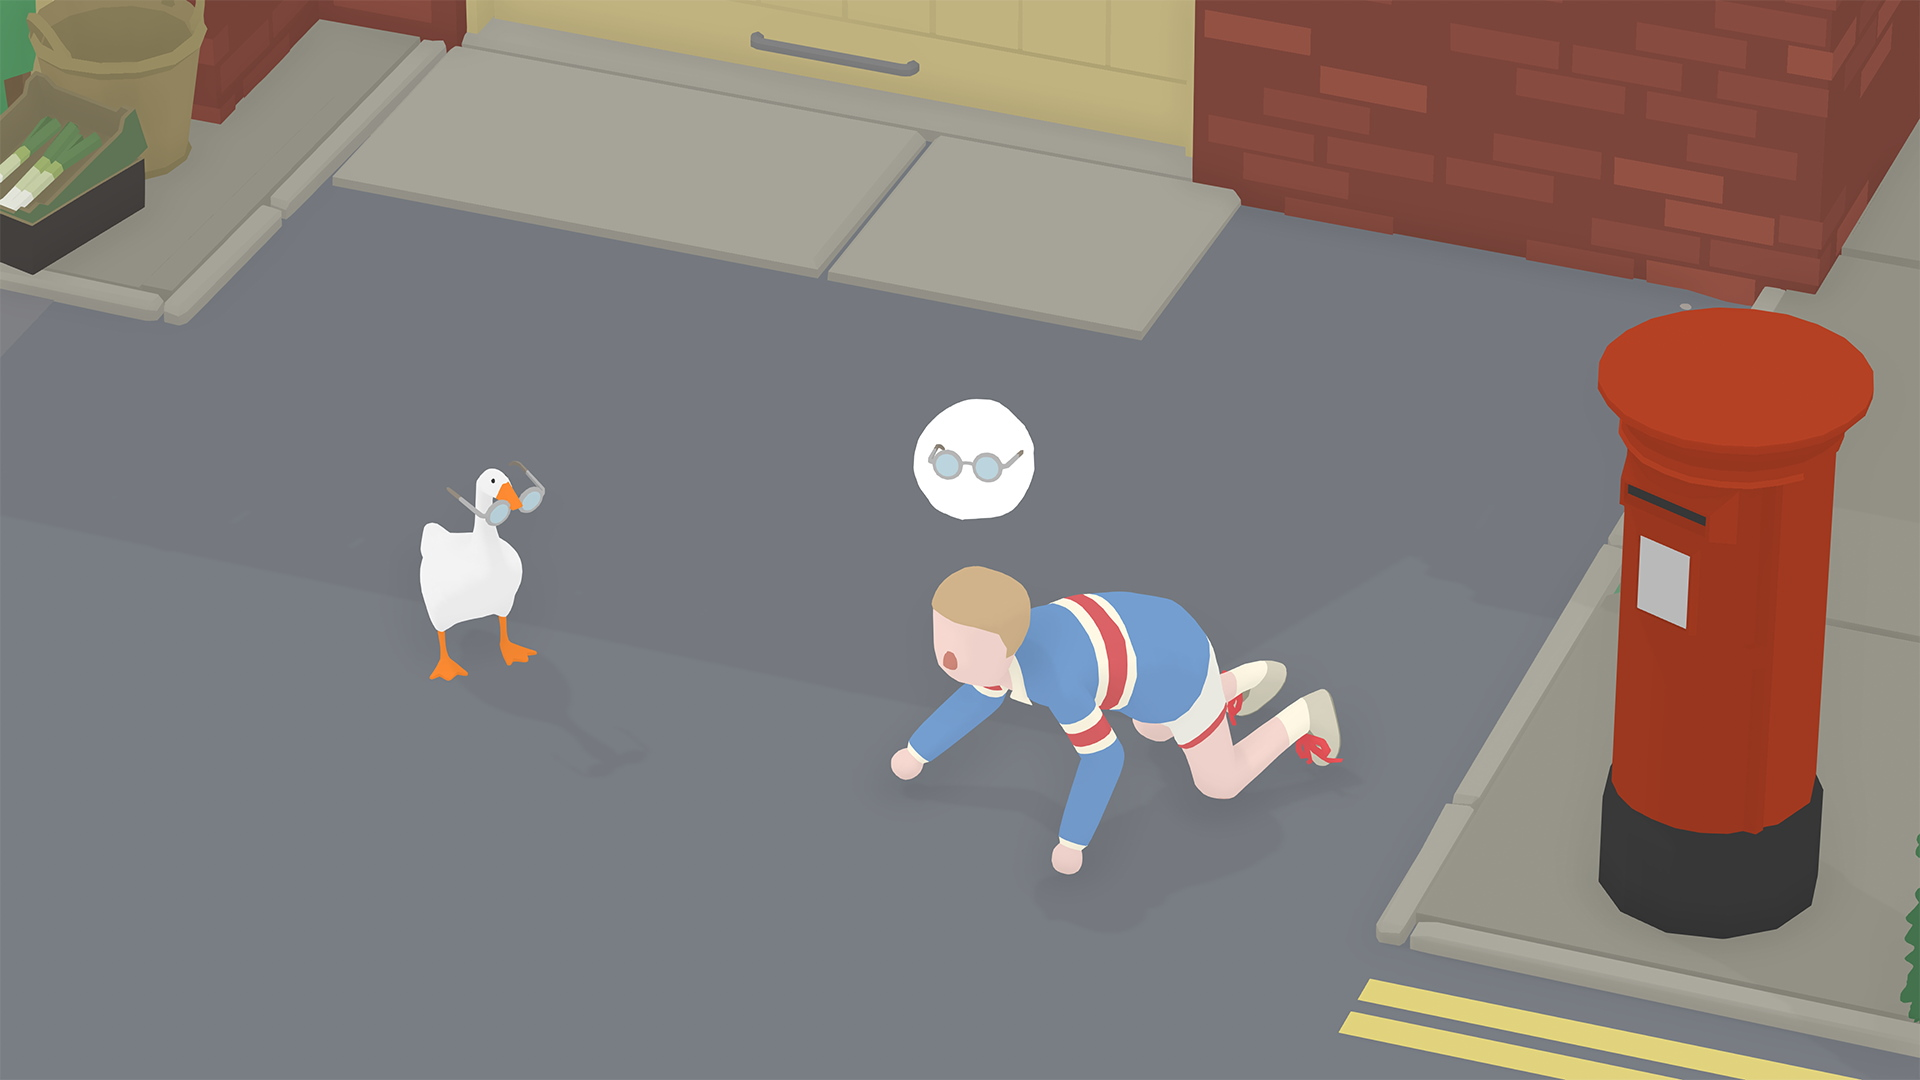 Untitled Goose Game: channeling the troll in you